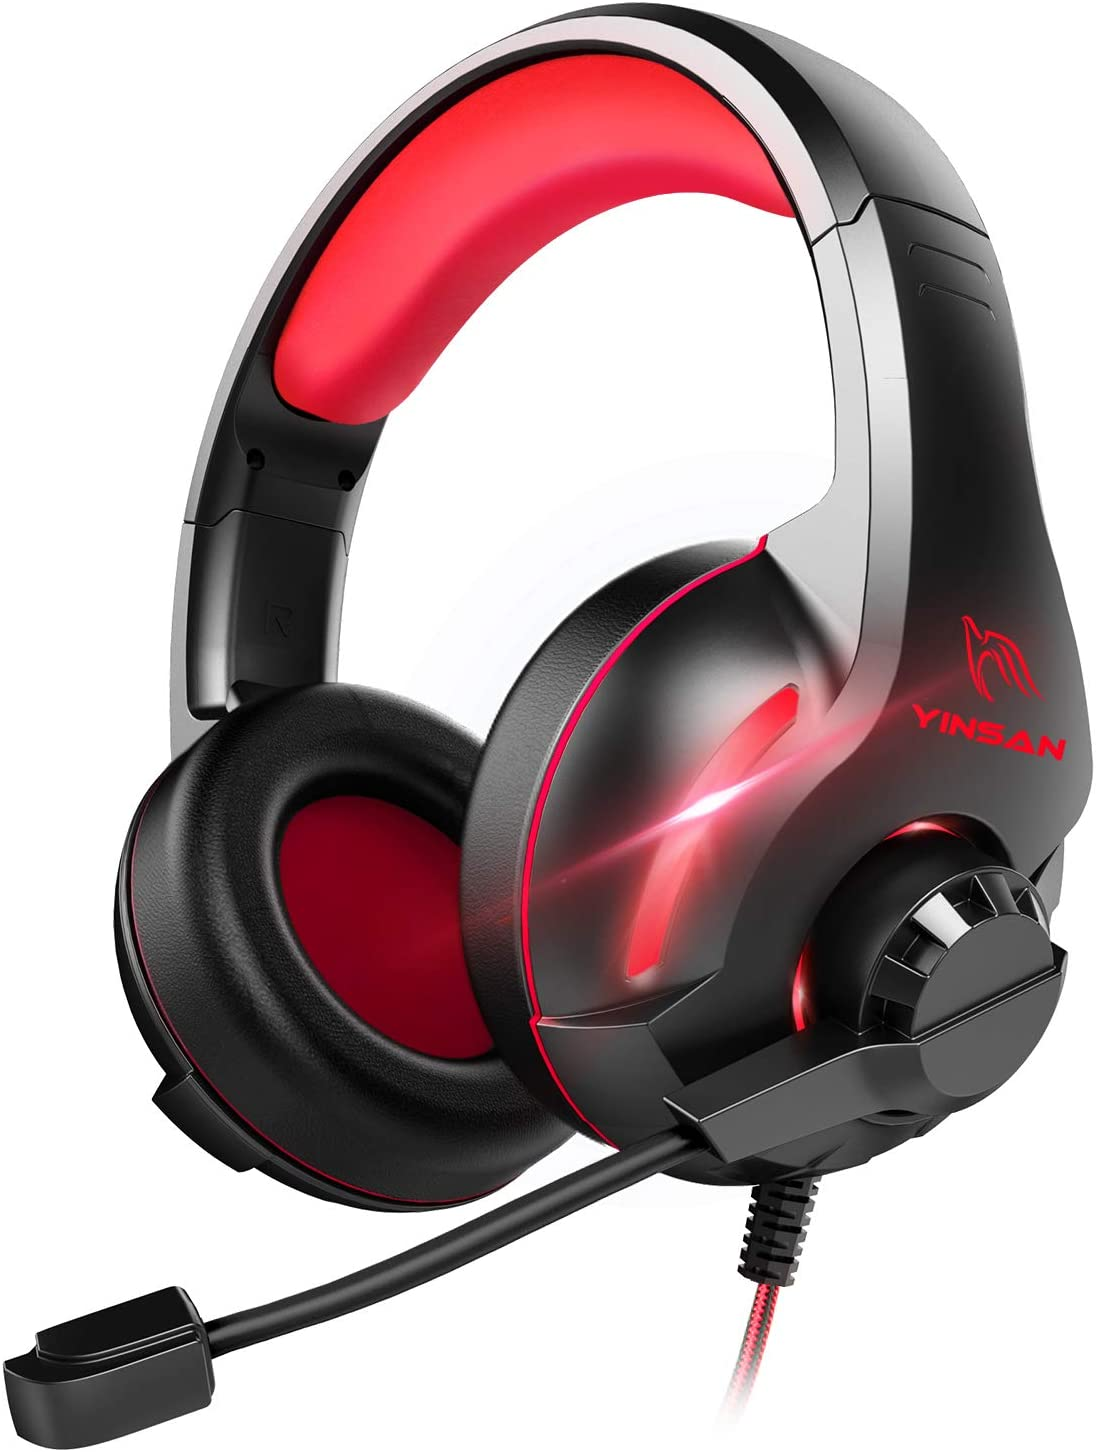 Cascos Auriculares, YINSAN Auriculares Gaming Estéreo da 3,5 mm Jack con Micrófono Flexible y Luz LED RGB, Cascos Gaming Profesionales para PS4 Xbox One Nintendo Switch PC Playstation 4